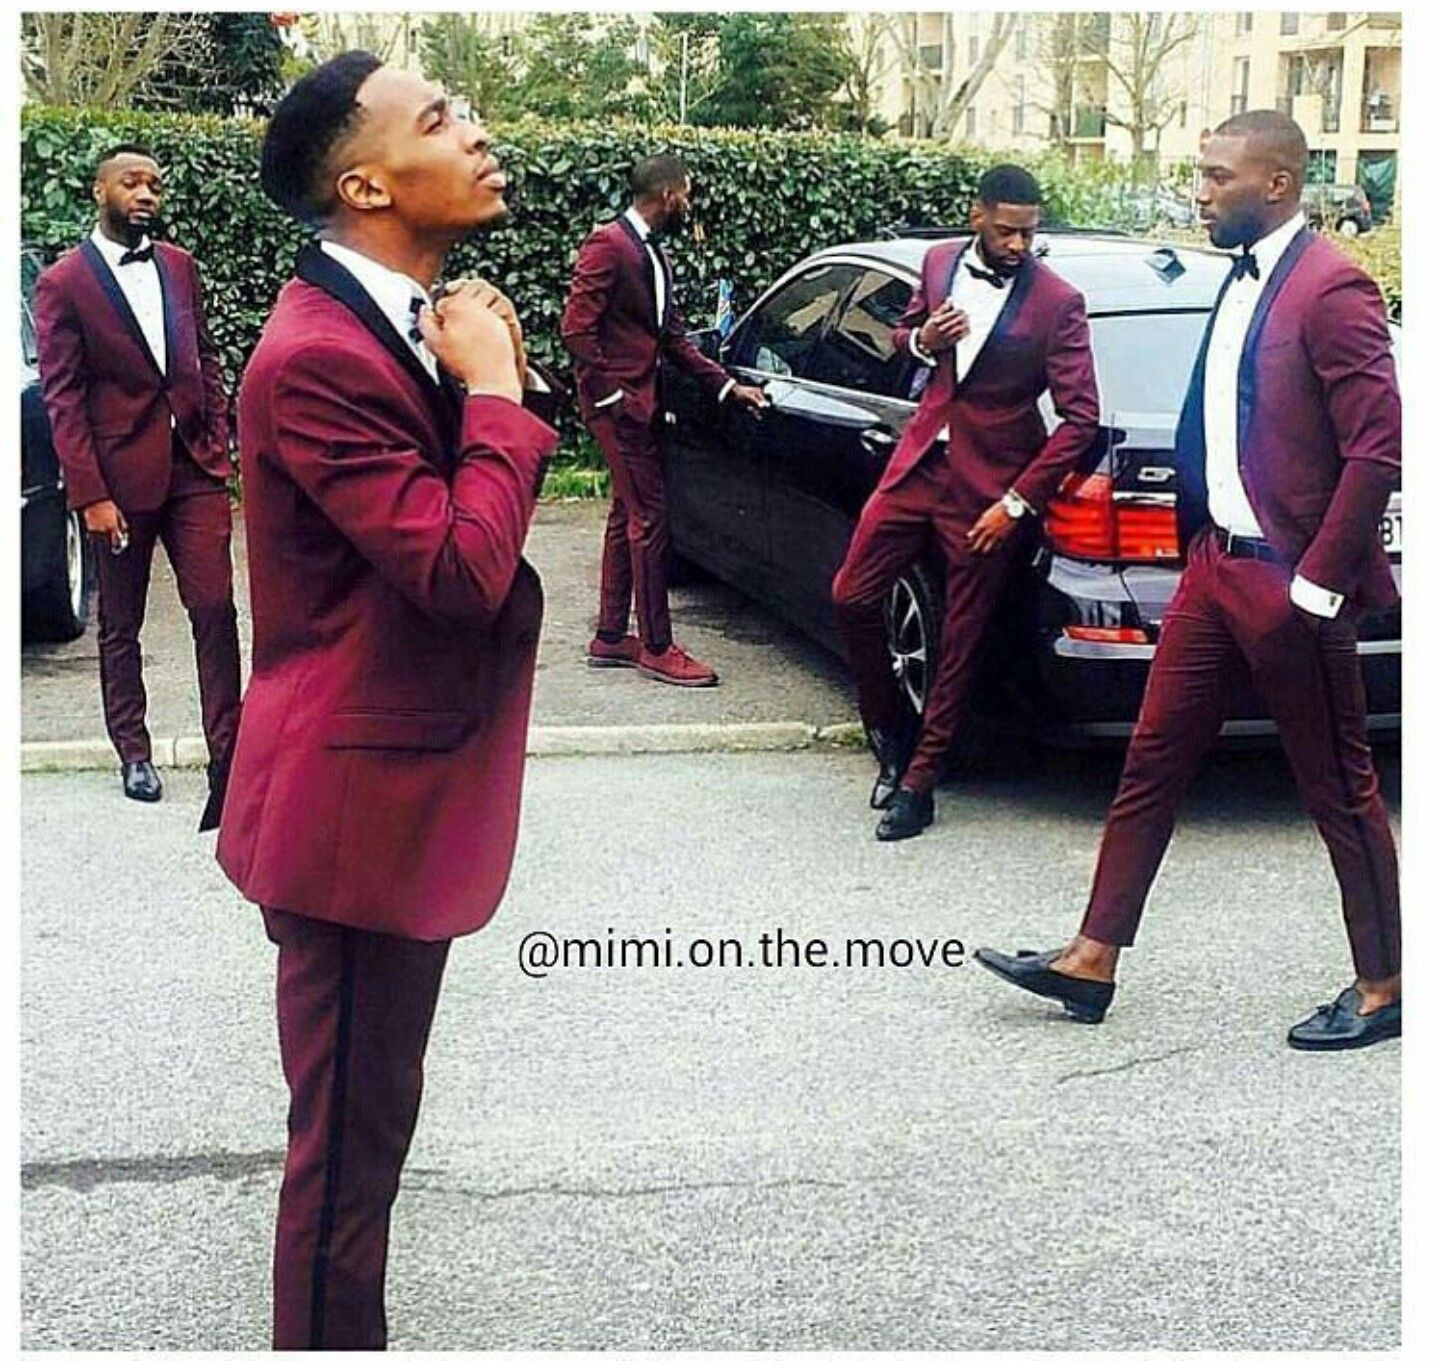 Yesss i love these burgundy tuxedos wedding groomsmen outfits